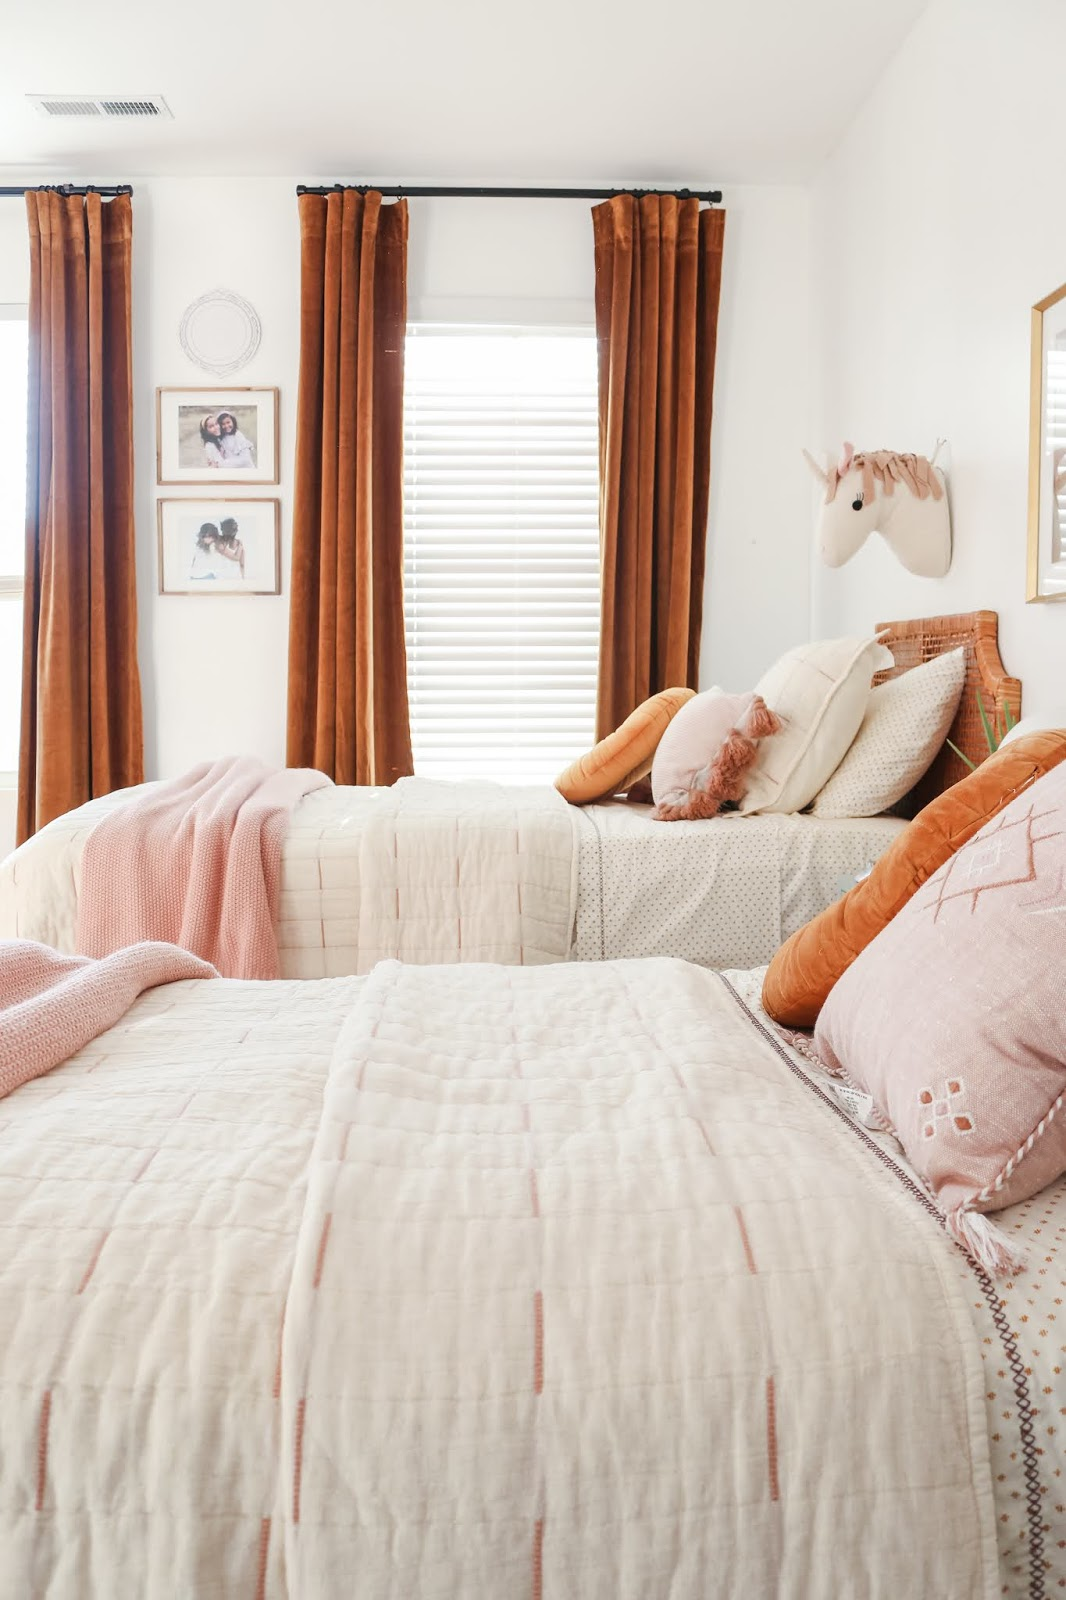 A boho shared bedroom for girls with rattan beds and luxe curtains